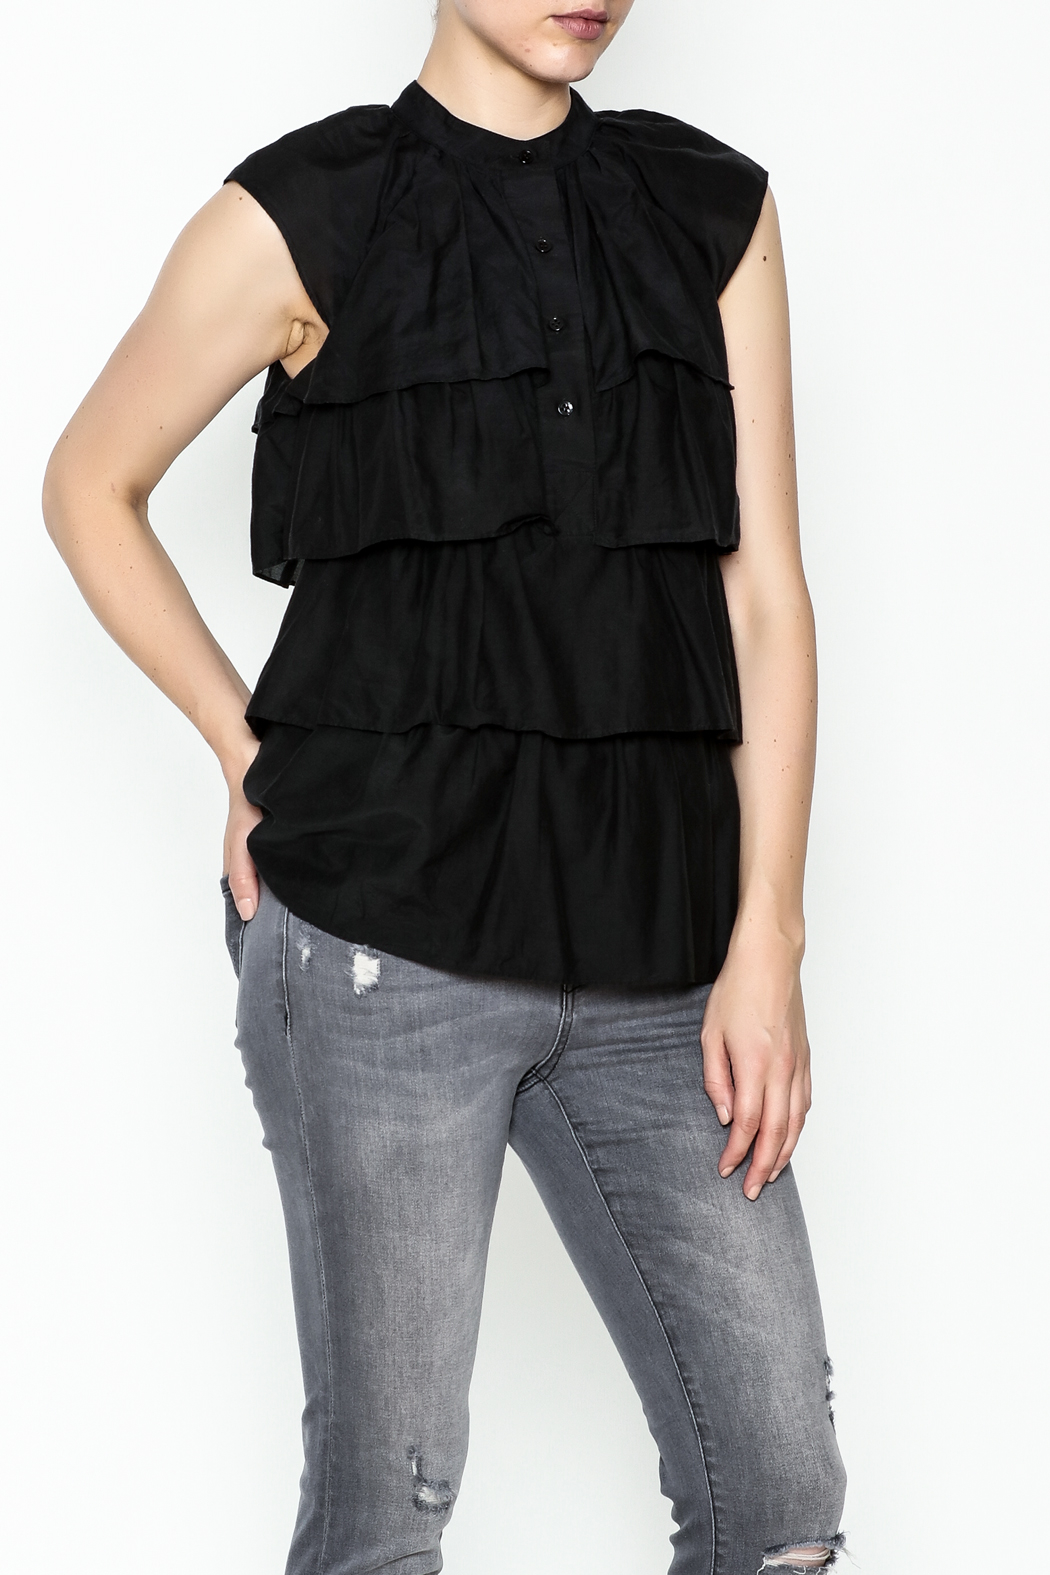 BCBG Max Azria Ruffled Black Blouse - Main Image